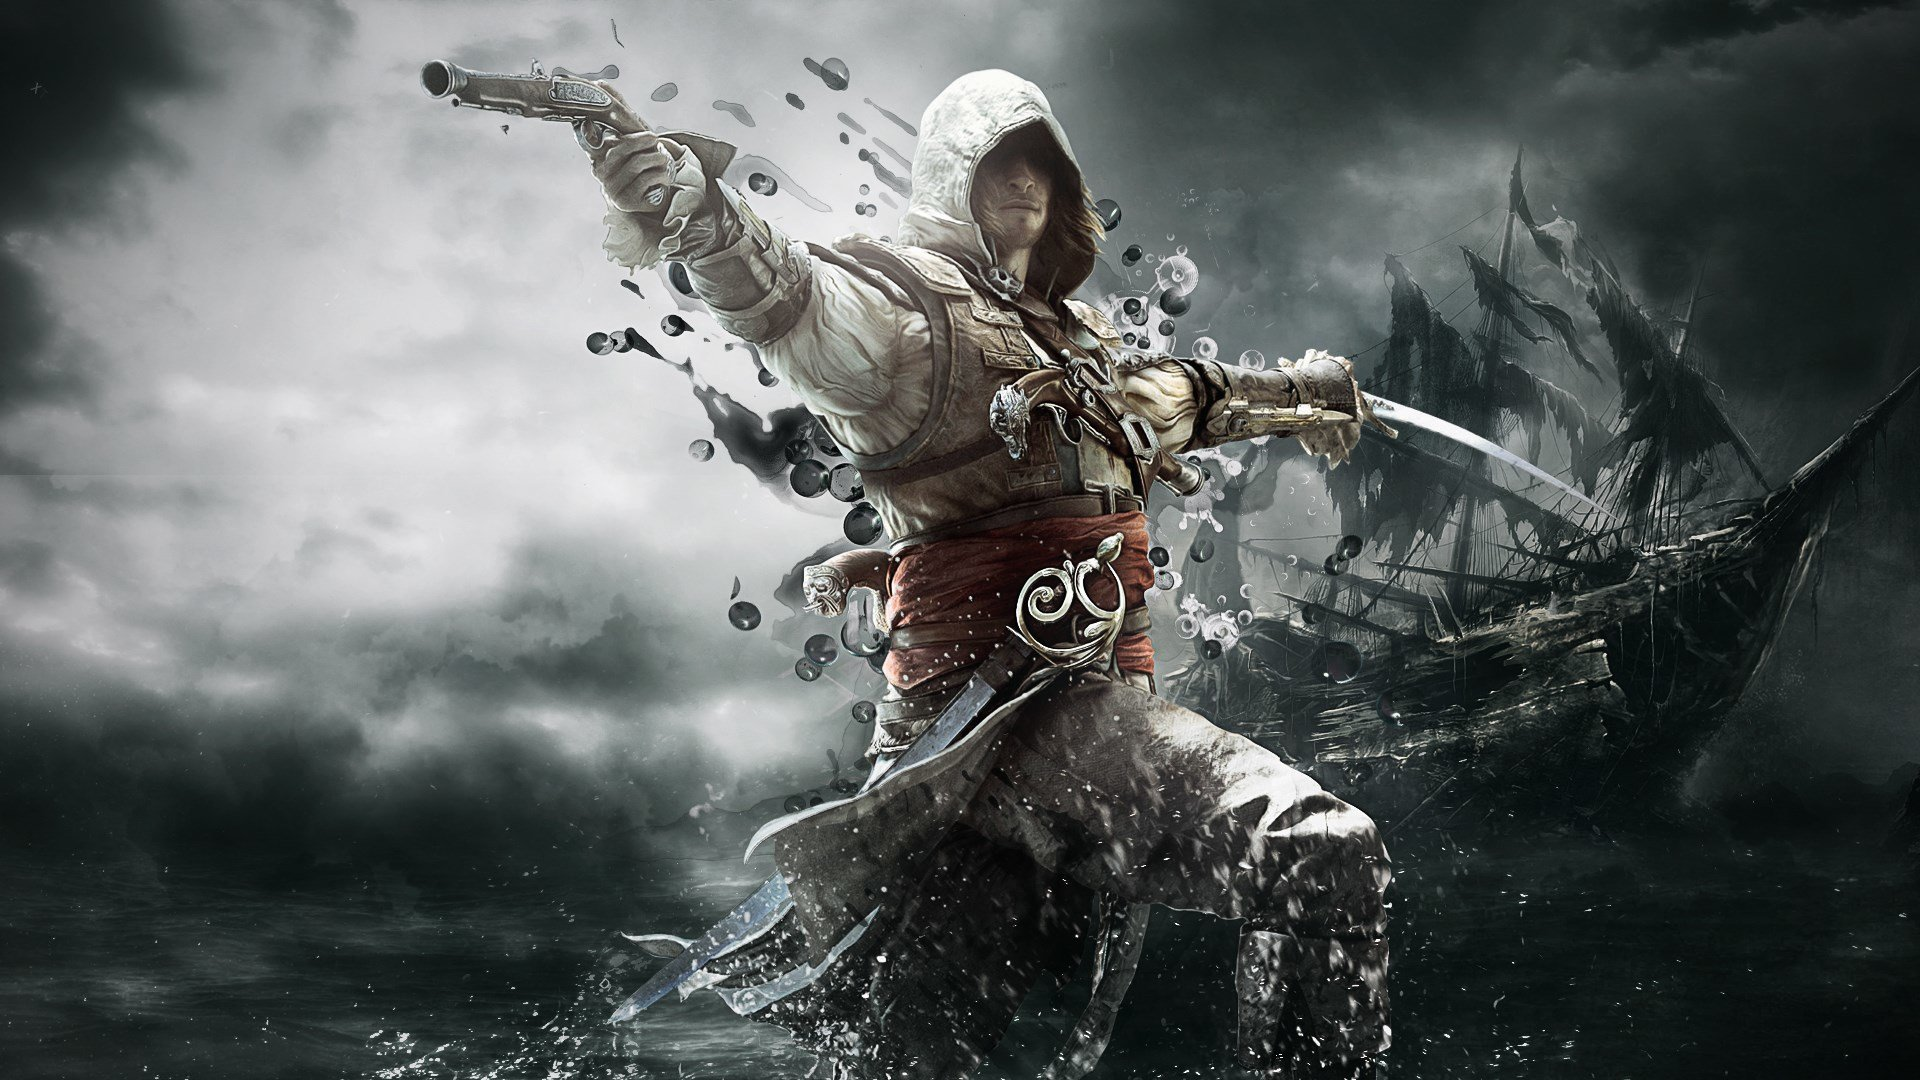 Awesome Assassin's Creed 4: Black Flag free wallpaper ID:234551 for 1080p desktop